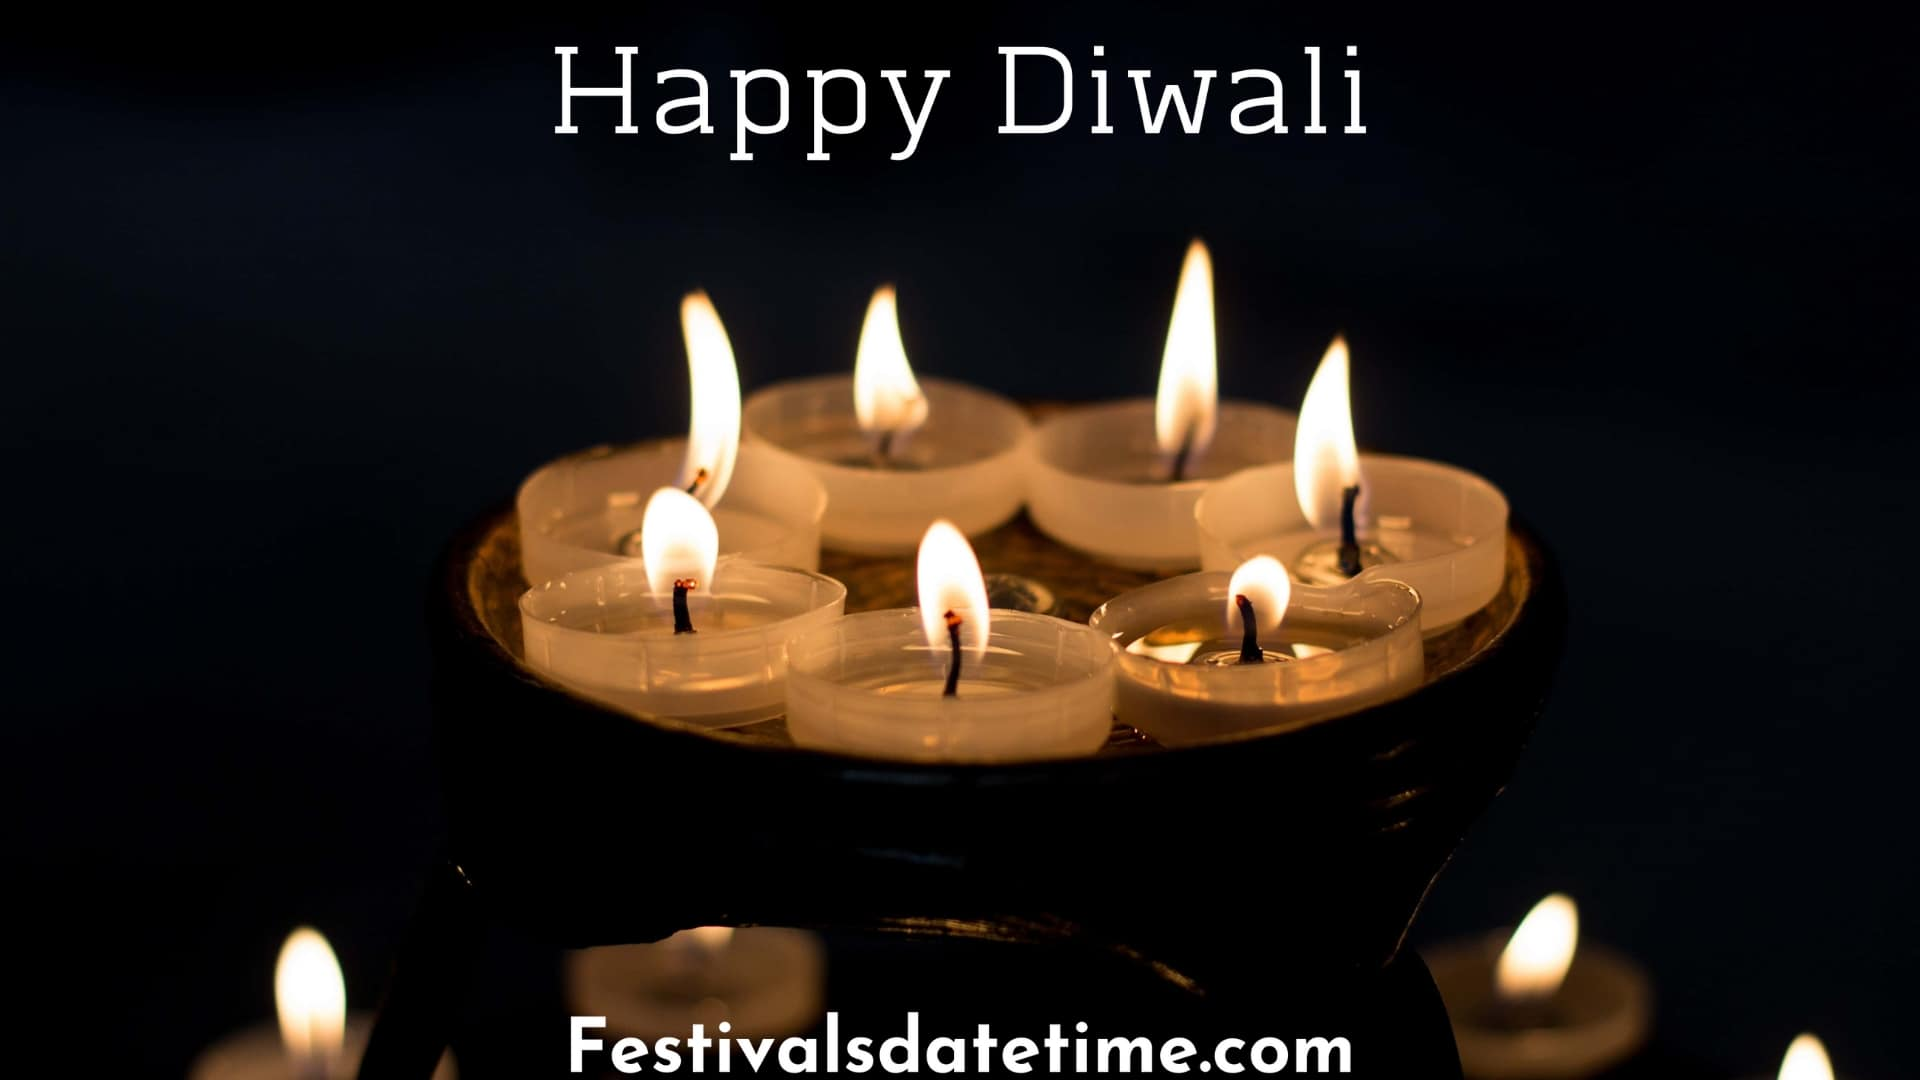 diwali_wallpaper_for_desktop